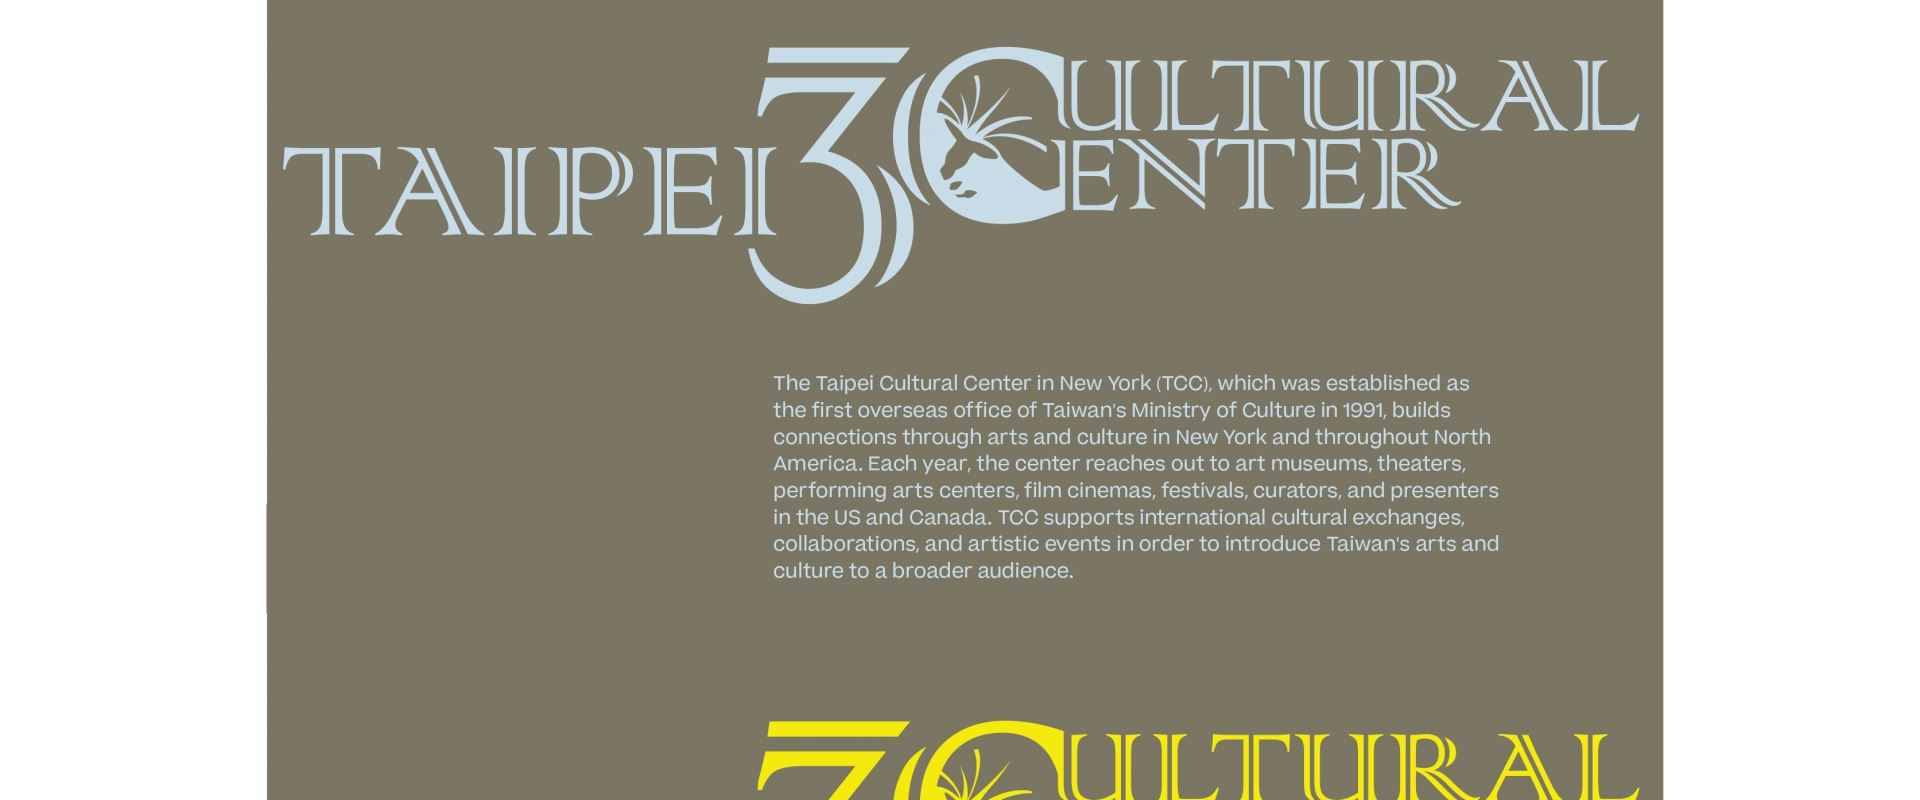 Taipei Cultural Center in New York's 30th Anniversary opennewwindow